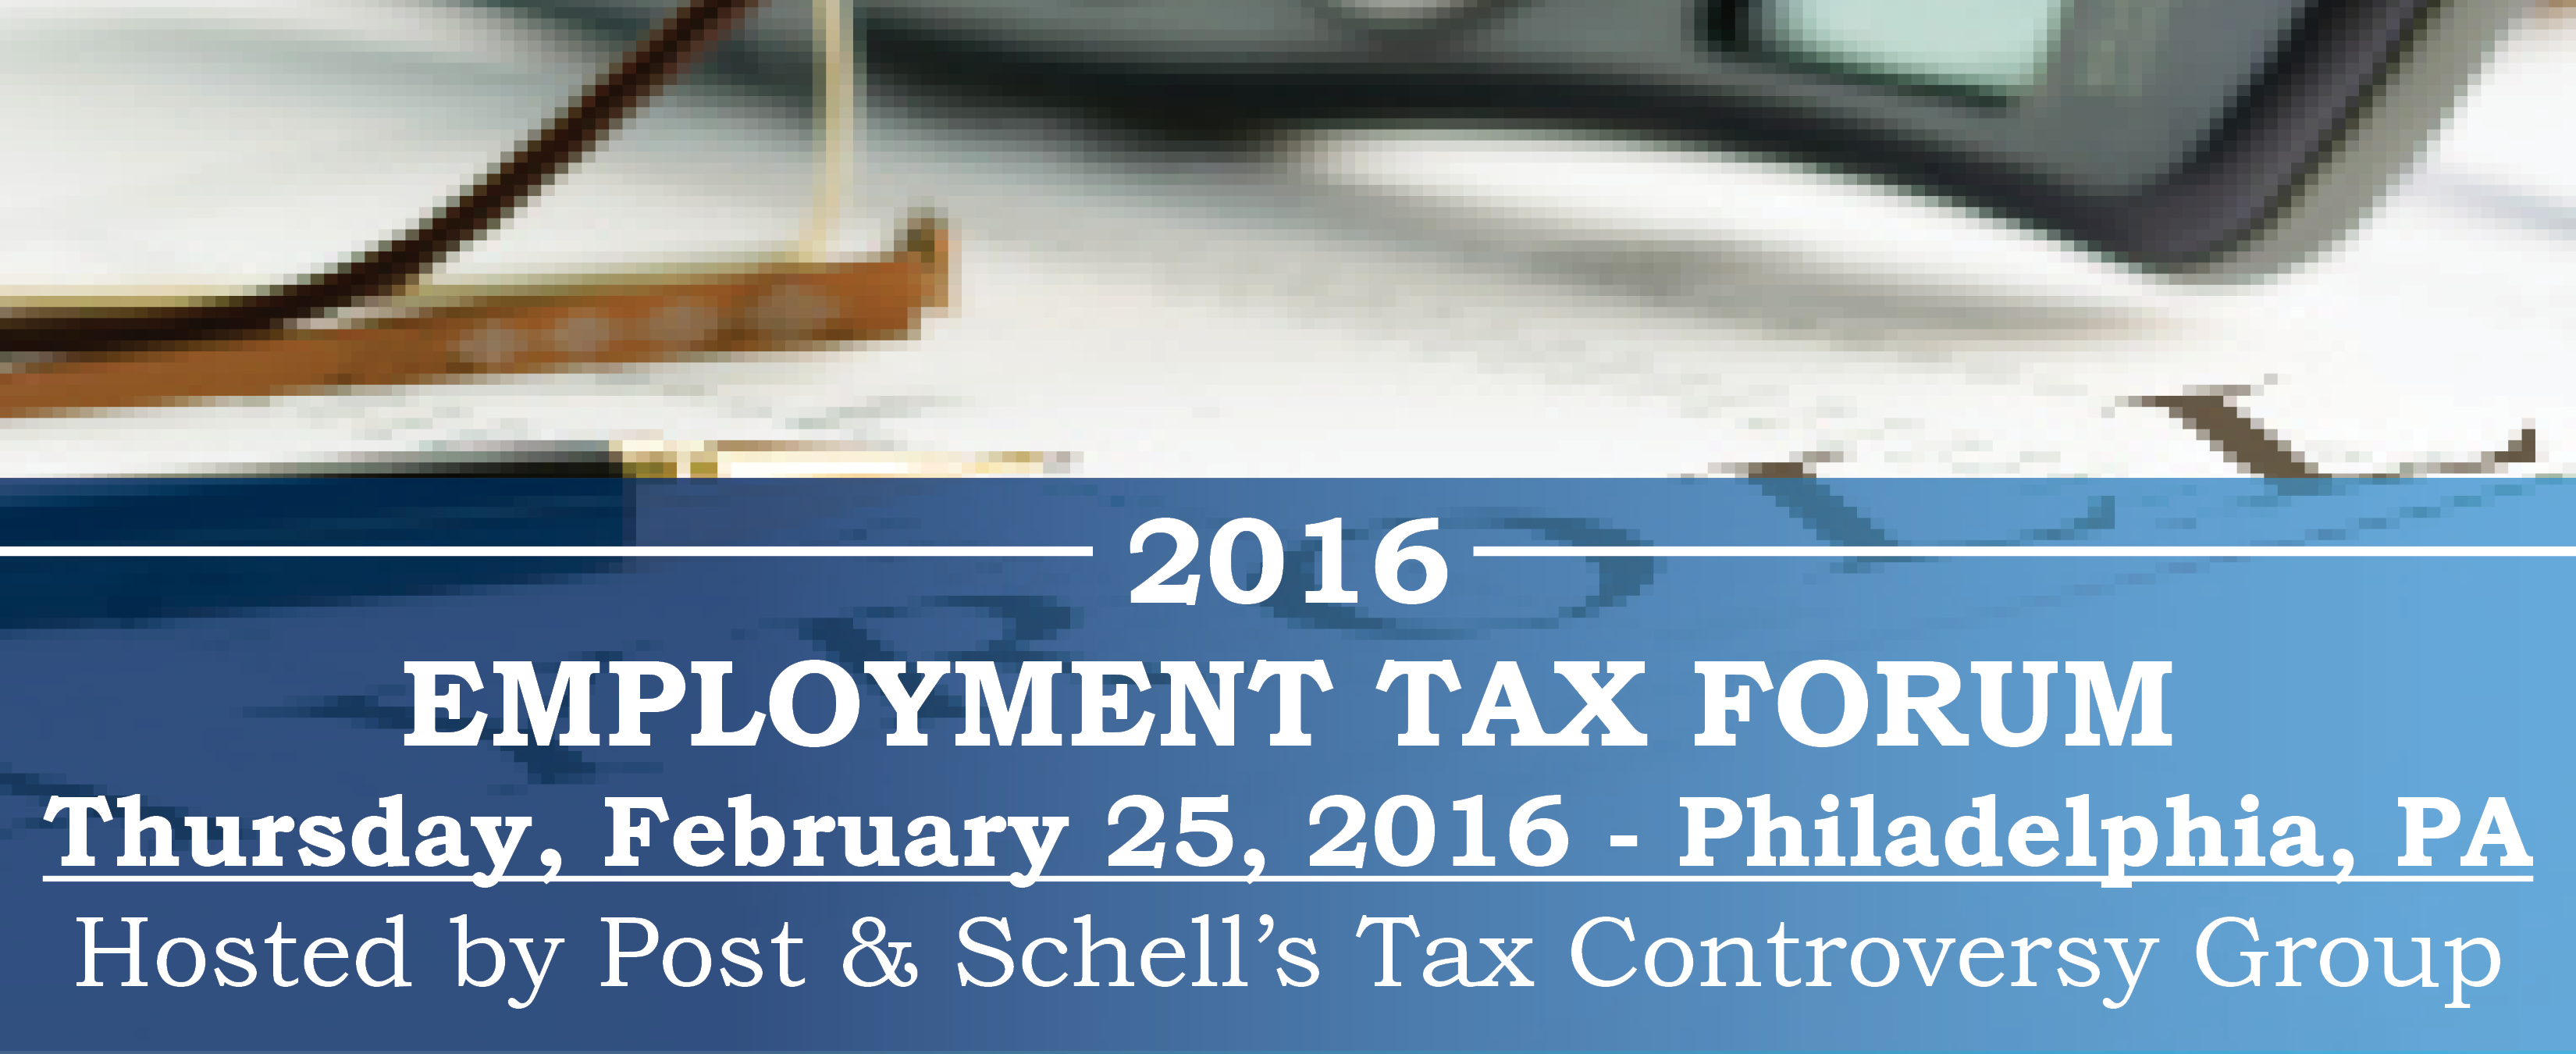 Employment Tax Forum RSVP BANNER - 2016